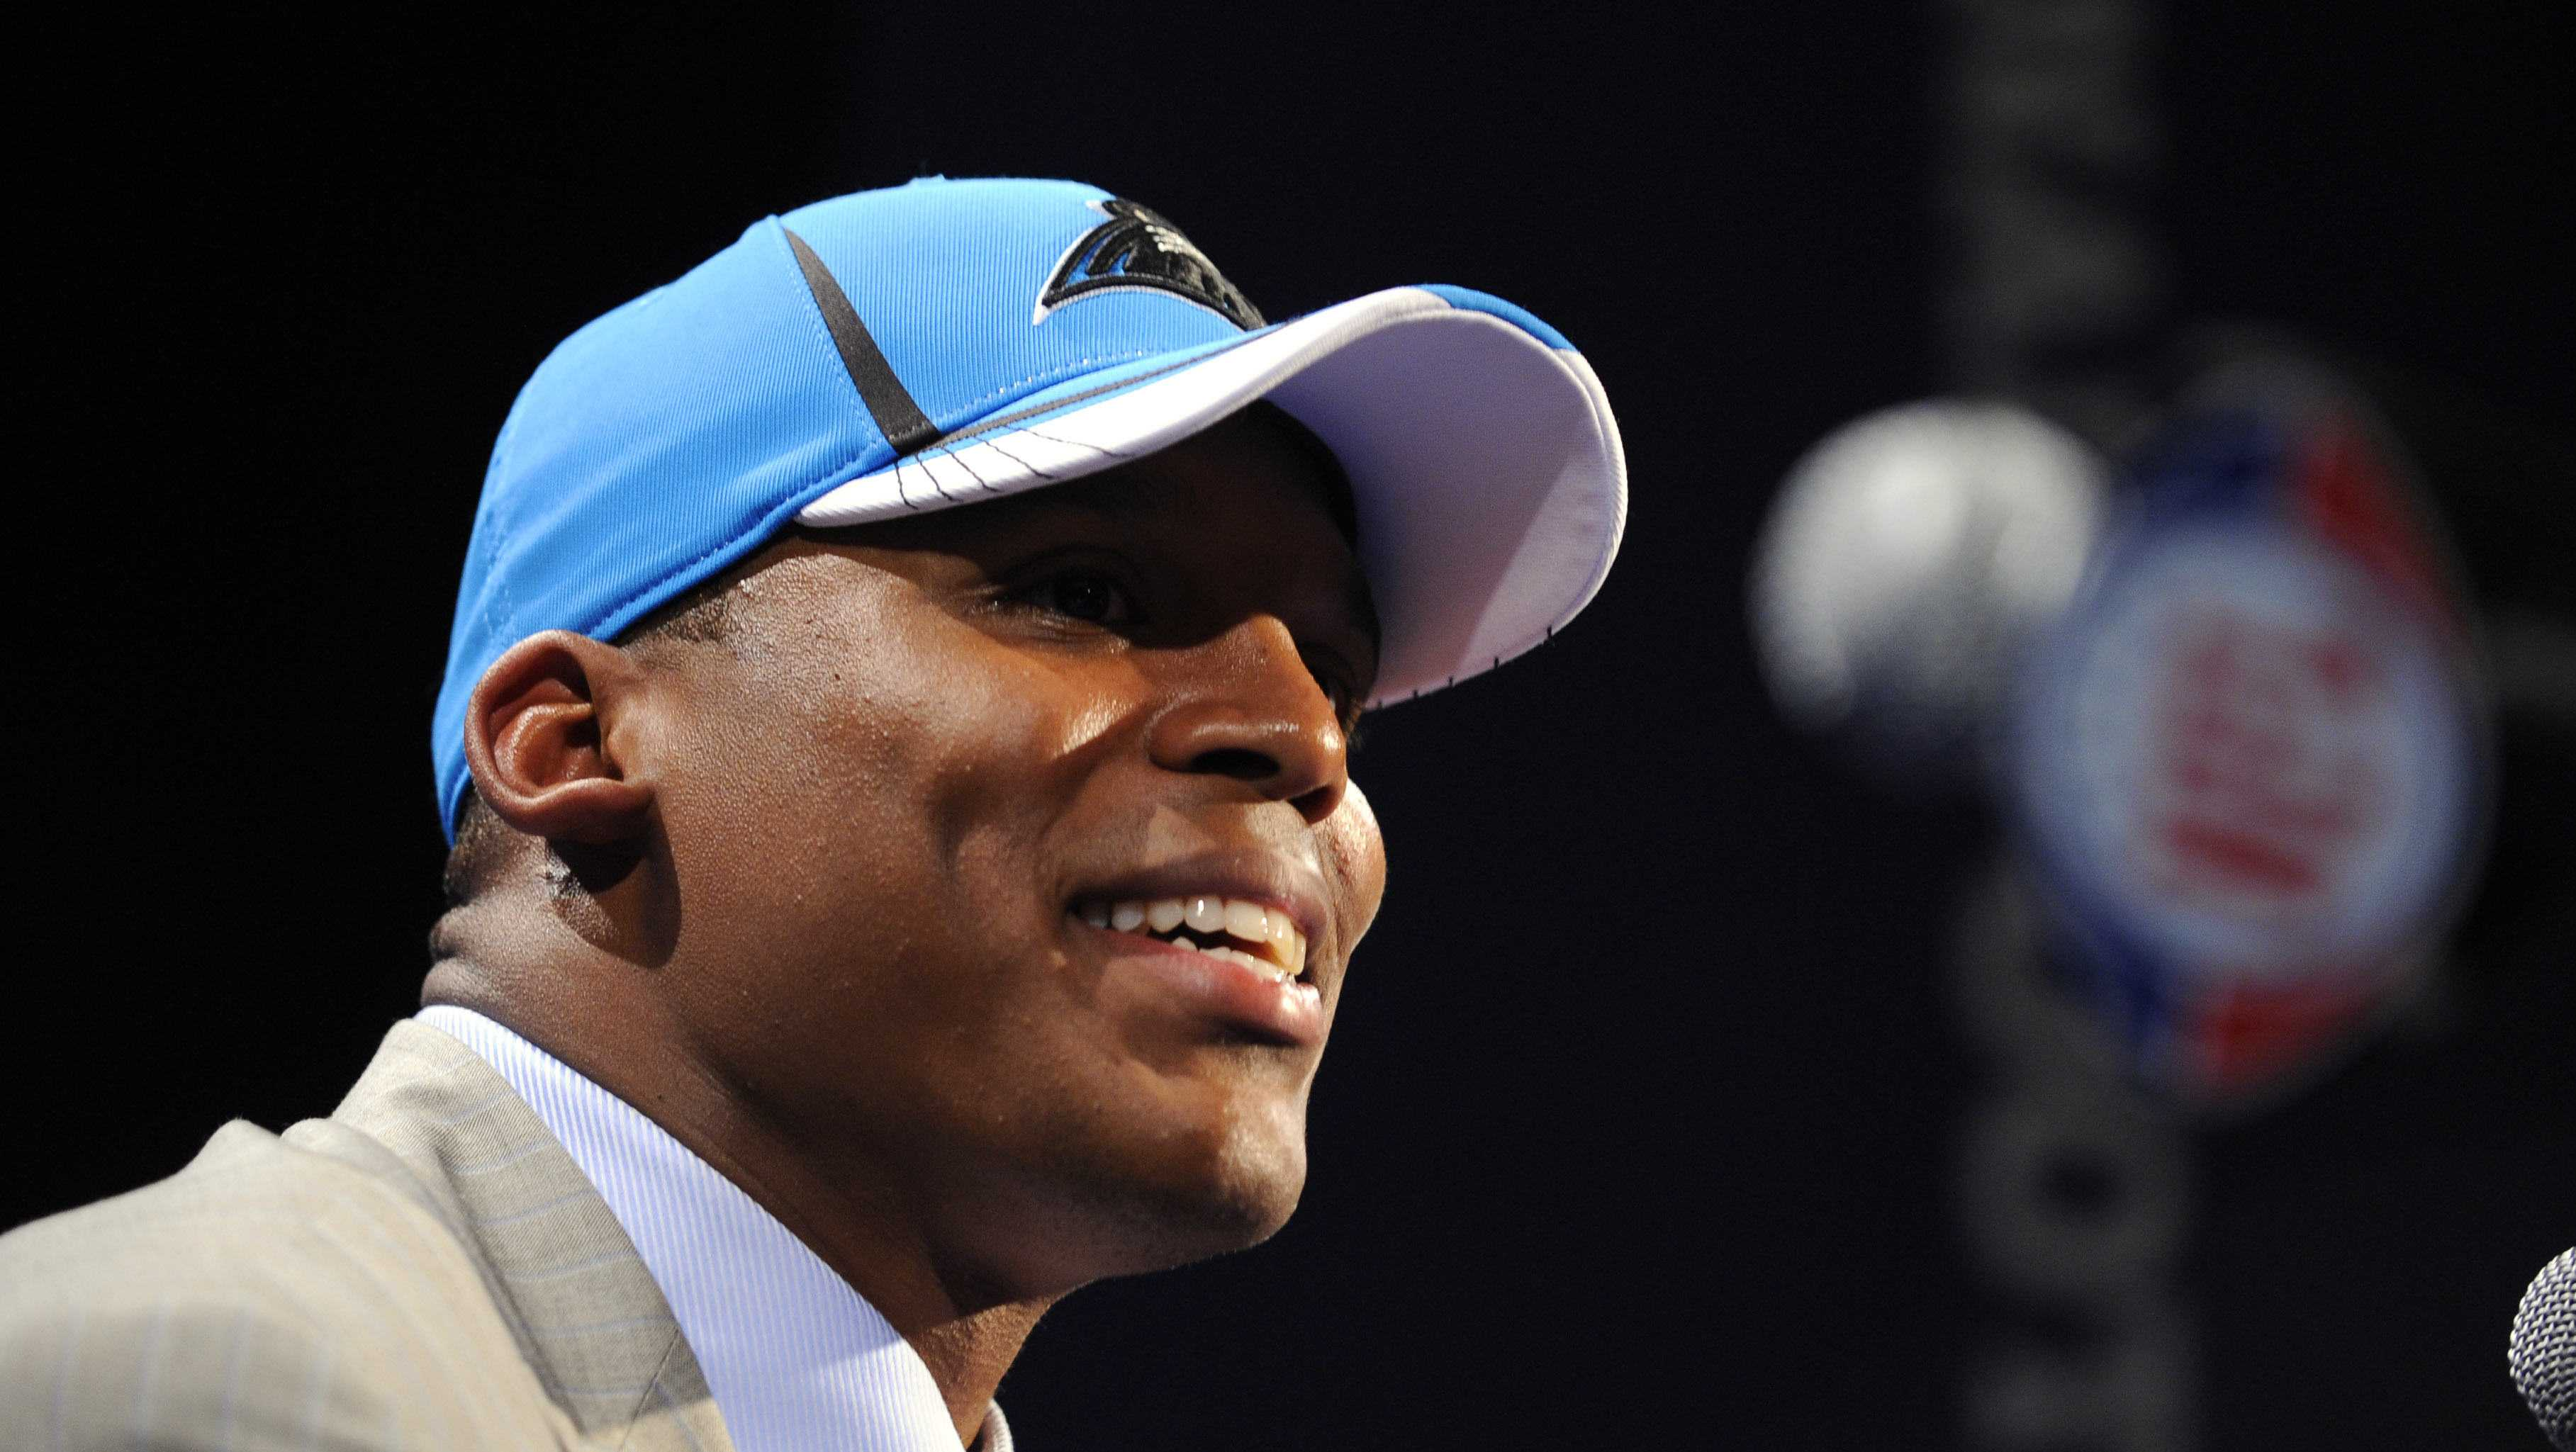 Auburn quarterback Cam Newton responds to questions during a news interview after he was selected as the first pick overall by the Carolina Panthers in the NFL football draft at Radio City Music Hall on Thursday, April 28, 2011, in New York. (AP Photo/Stephen Chernin)